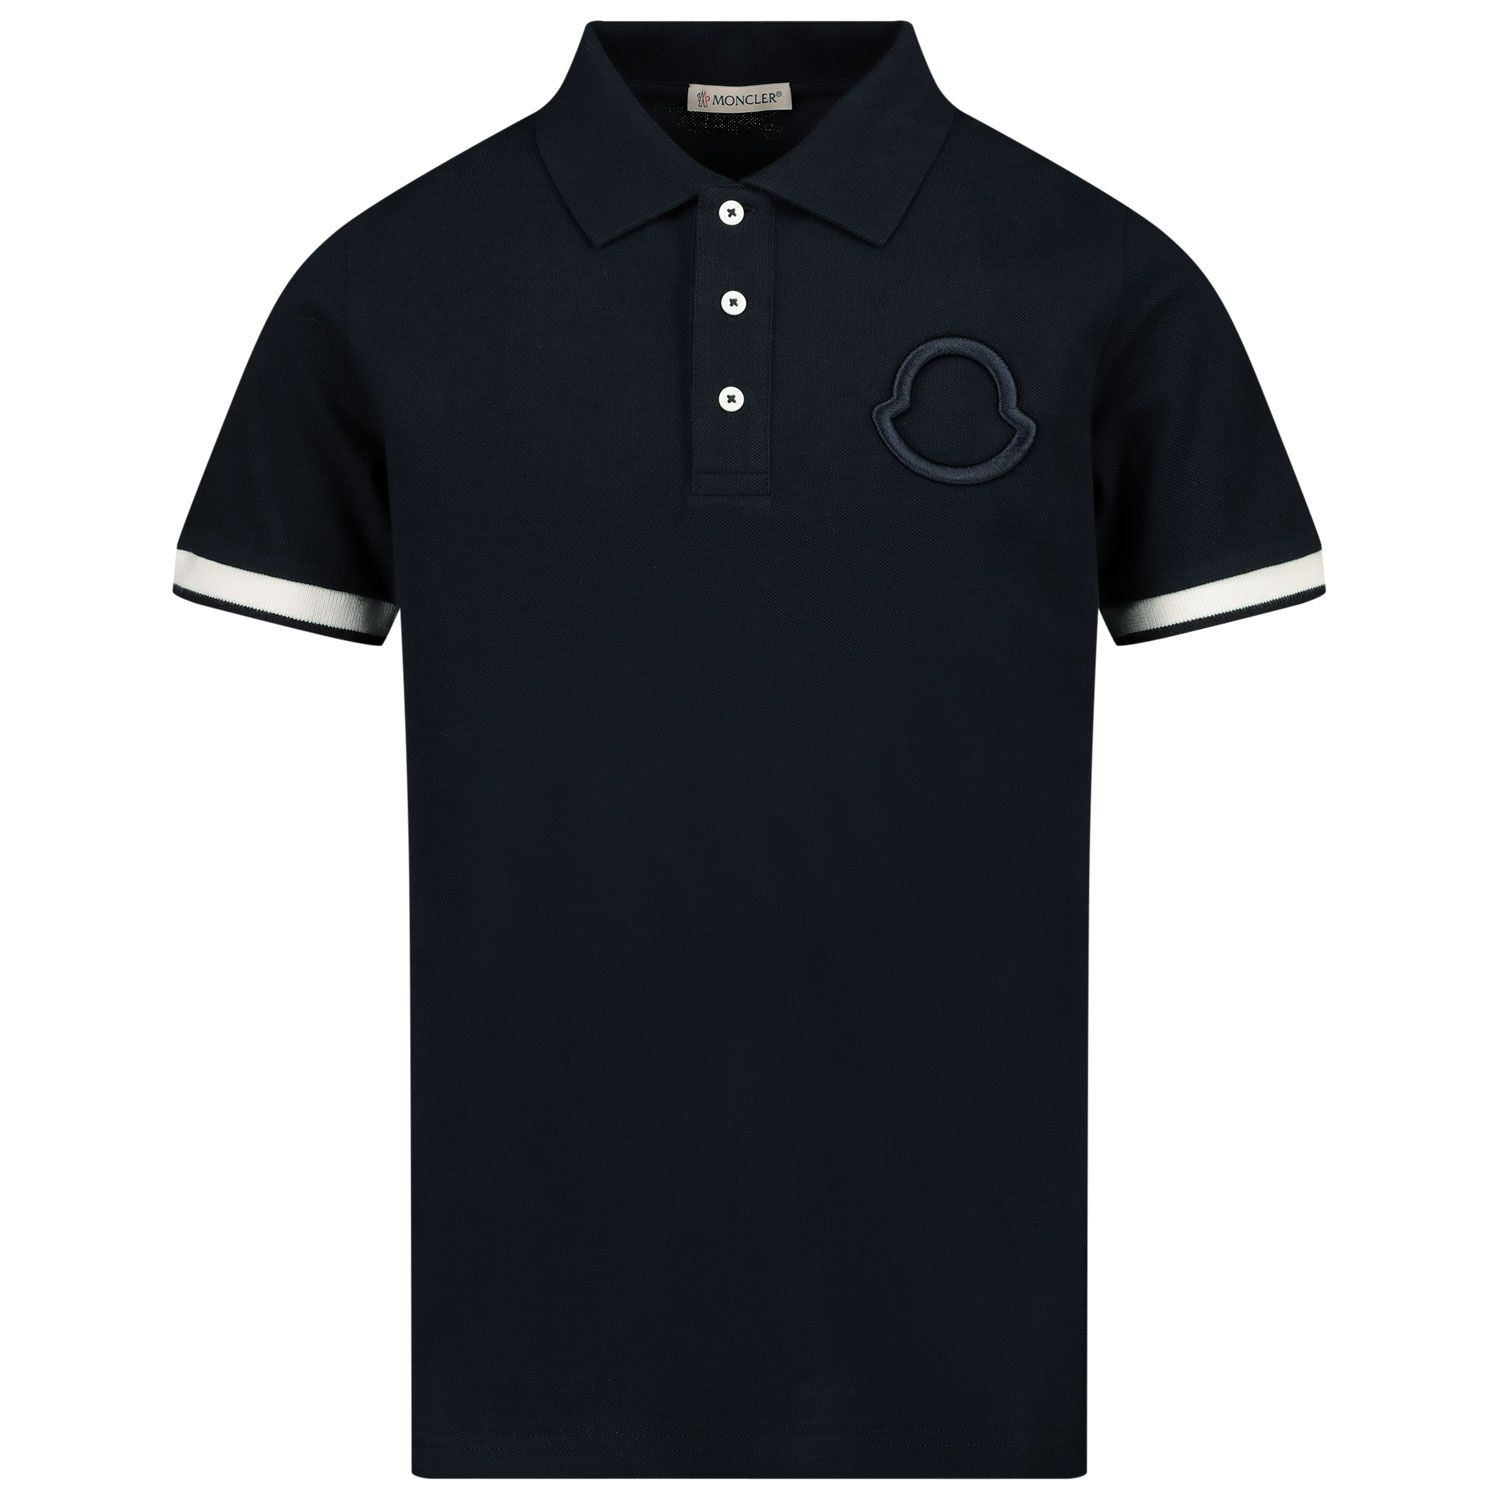 Picture of Moncler 8A71320 kids polo shirt navy